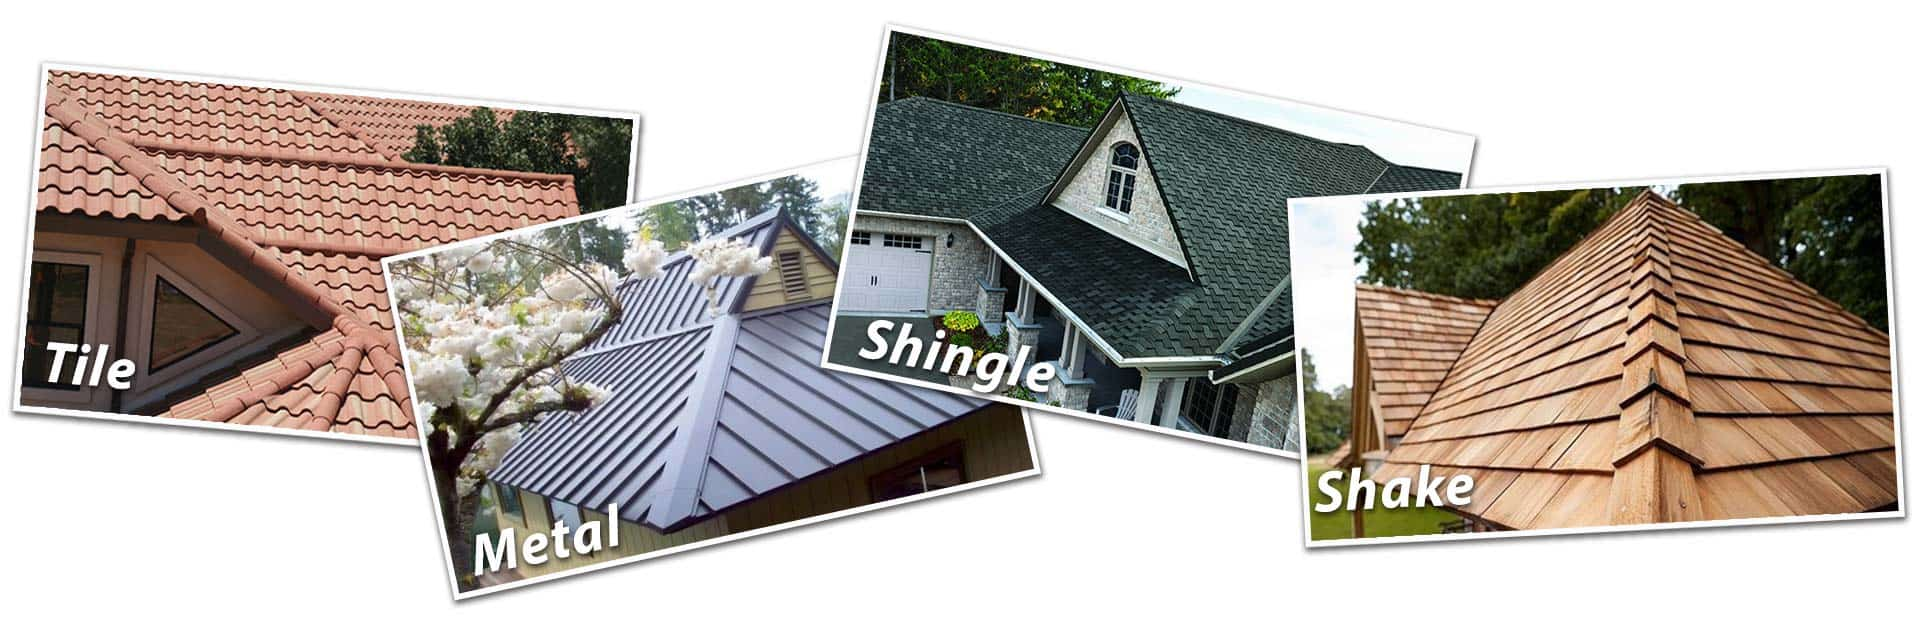 roofing services dallas tx - types of roofing - by Ready Roofing & Rennovation